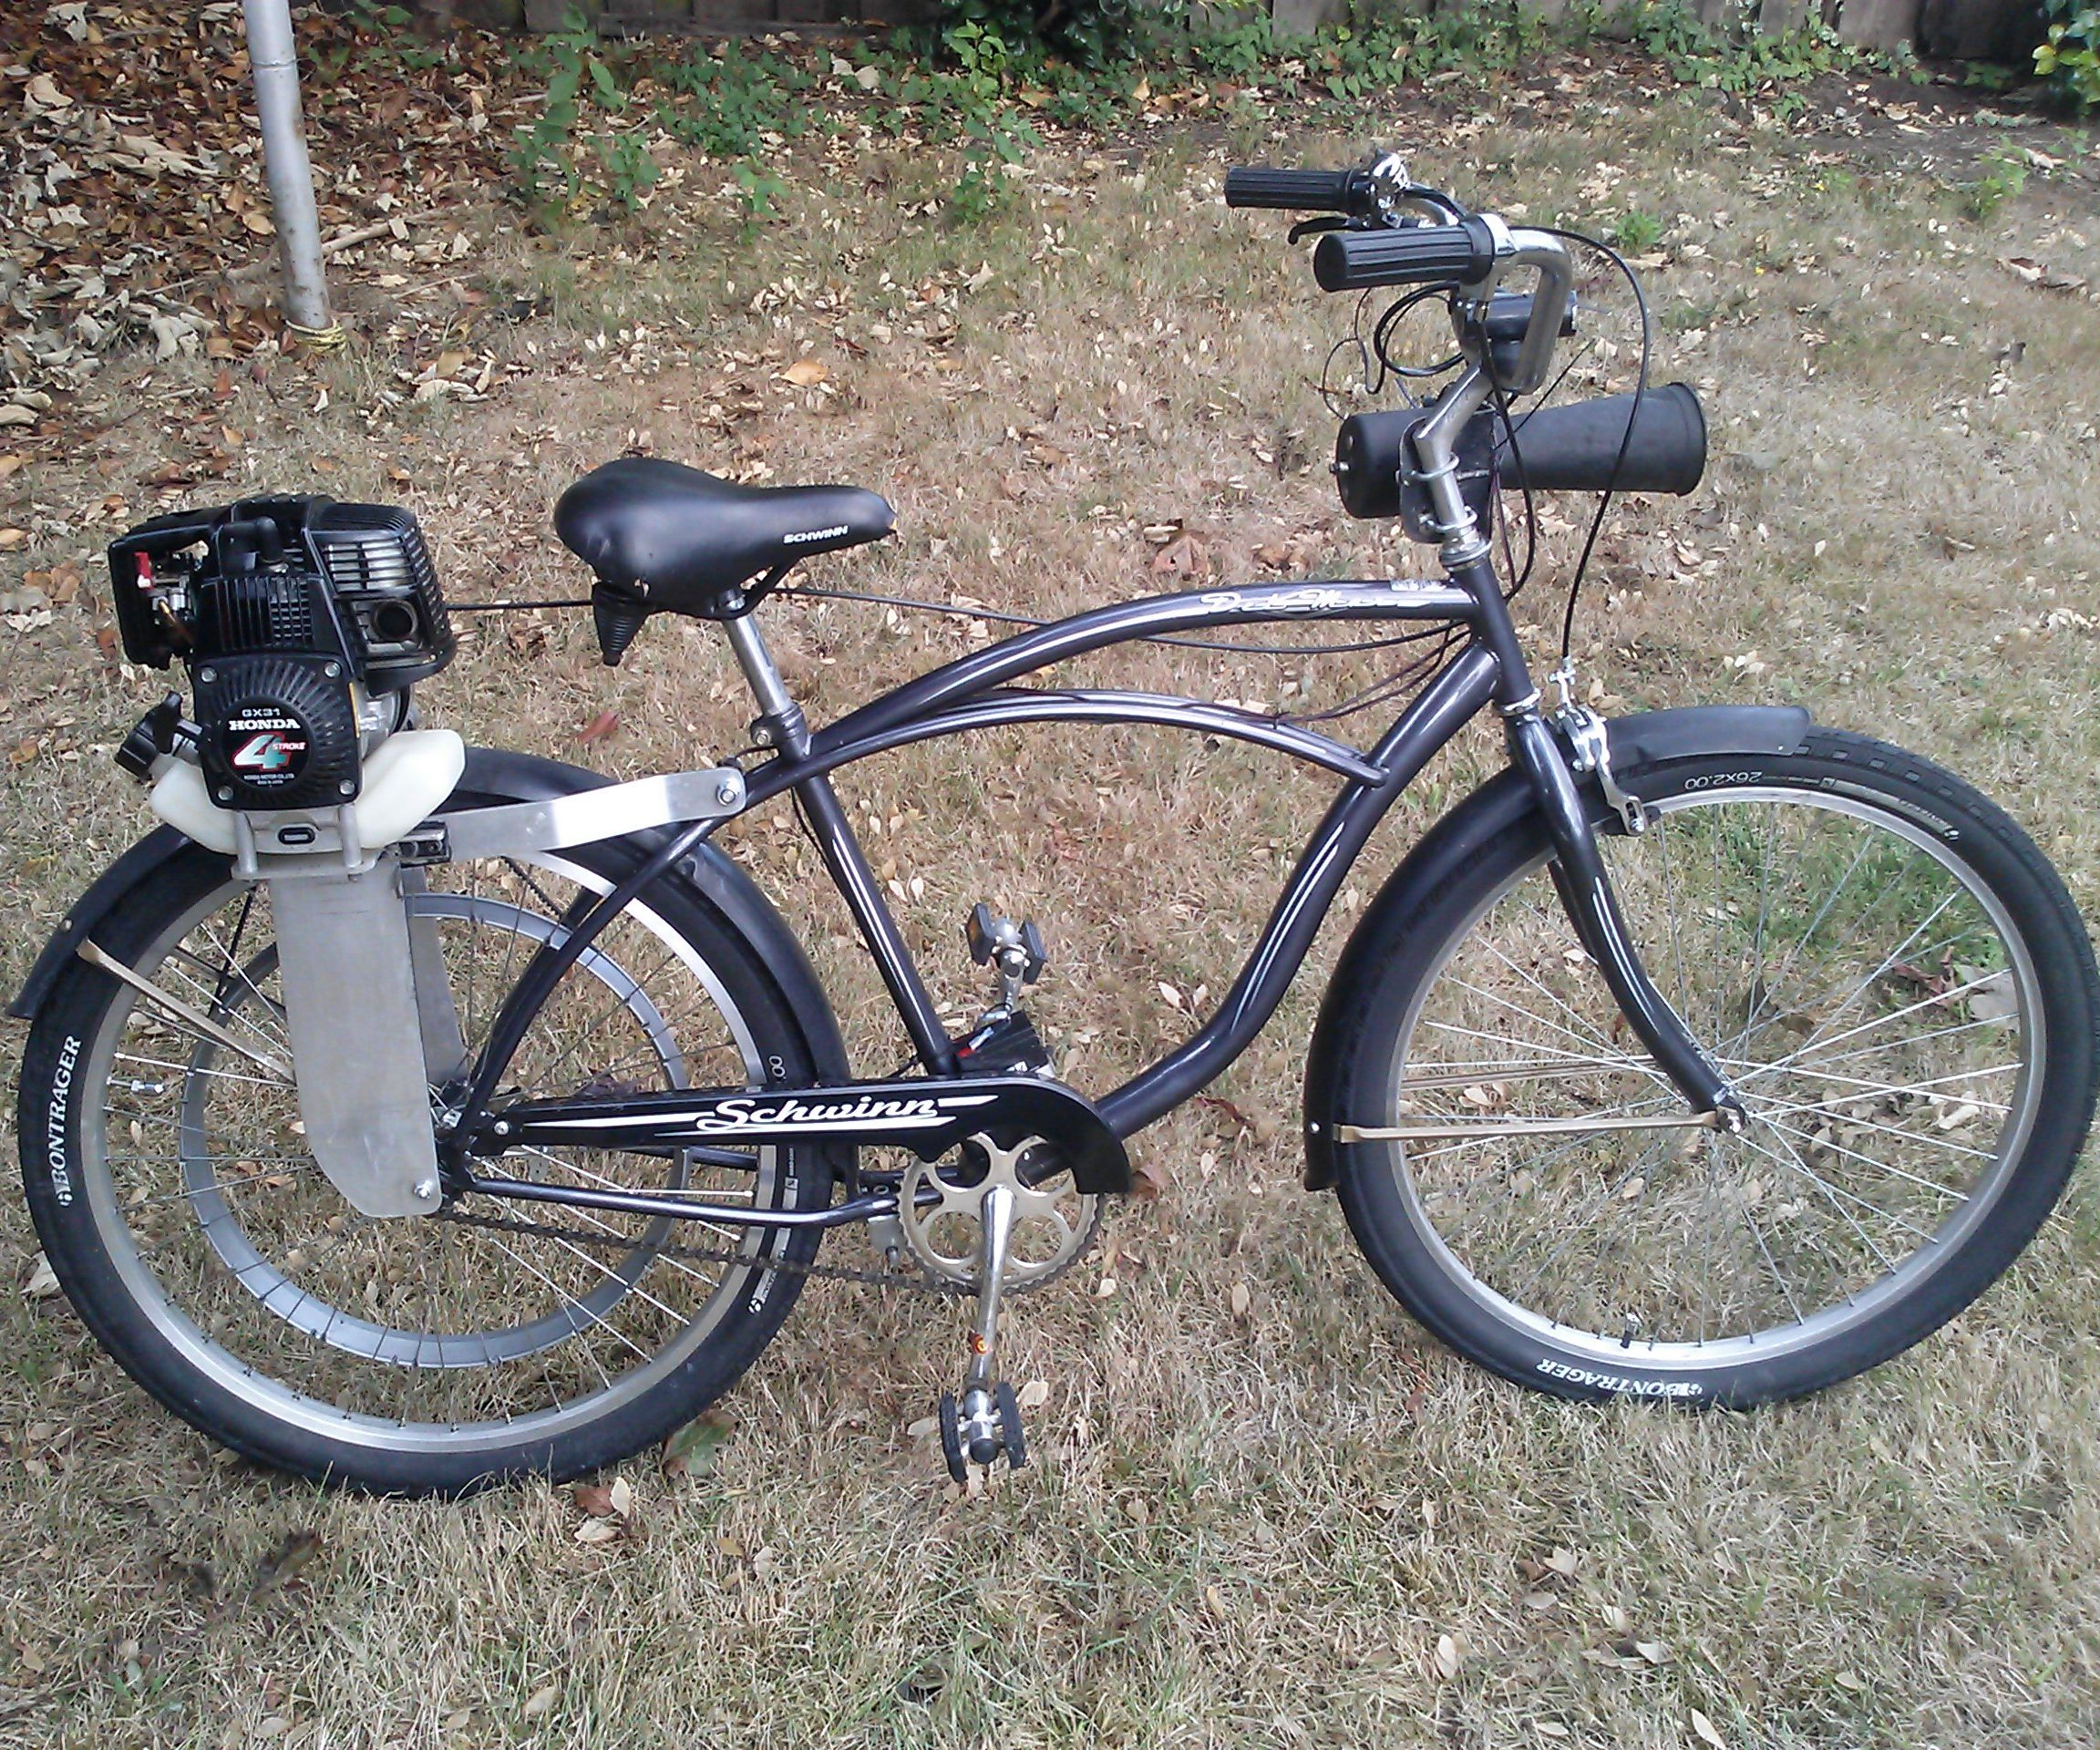 Honda Motorized Bicycle